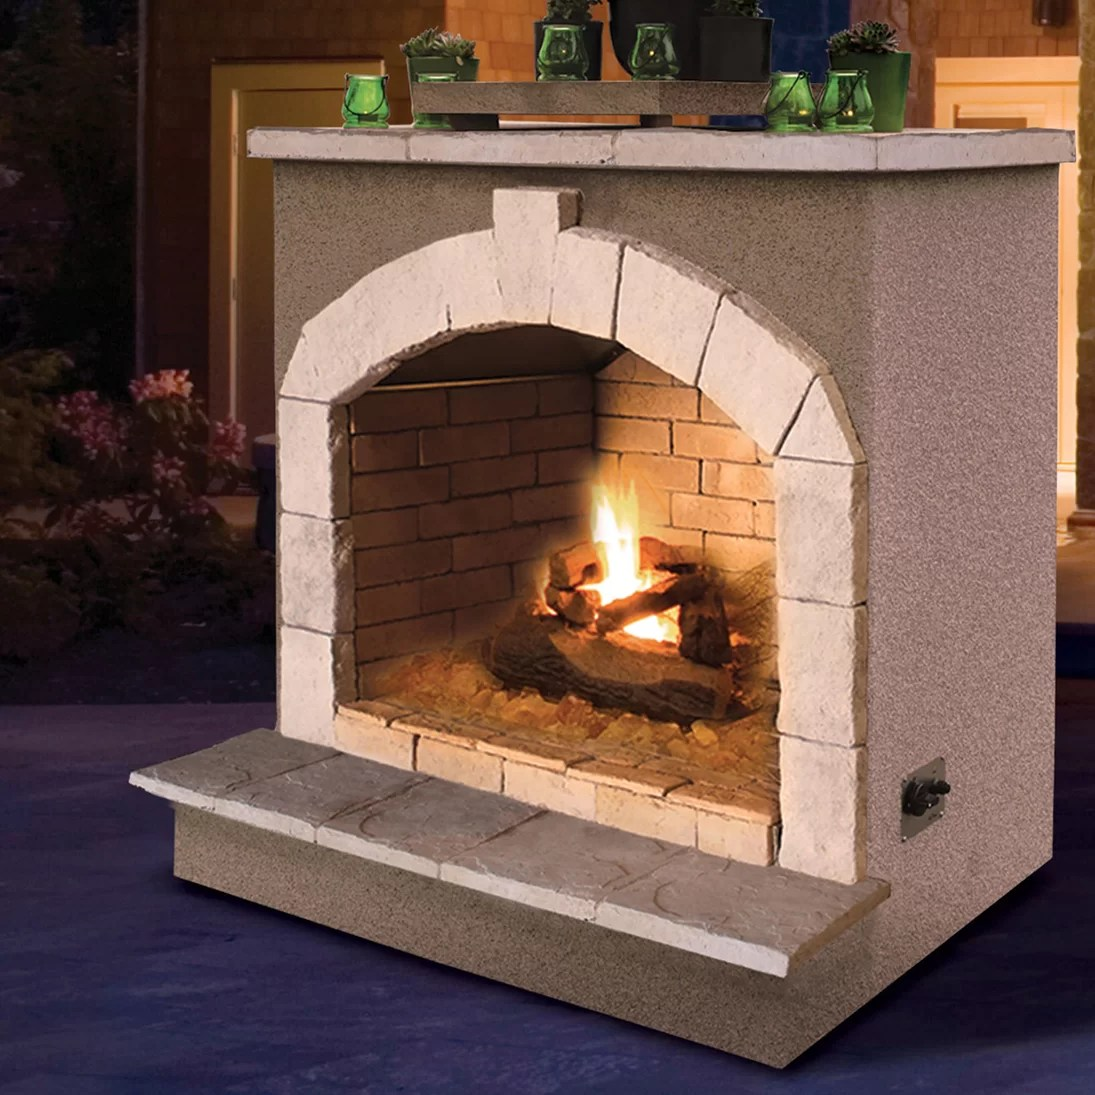 CalFlame Propane Gas Outdoor Fireplace & Reviews   Wayfair on Outdoor Gas Fireplace For Deck id=45414